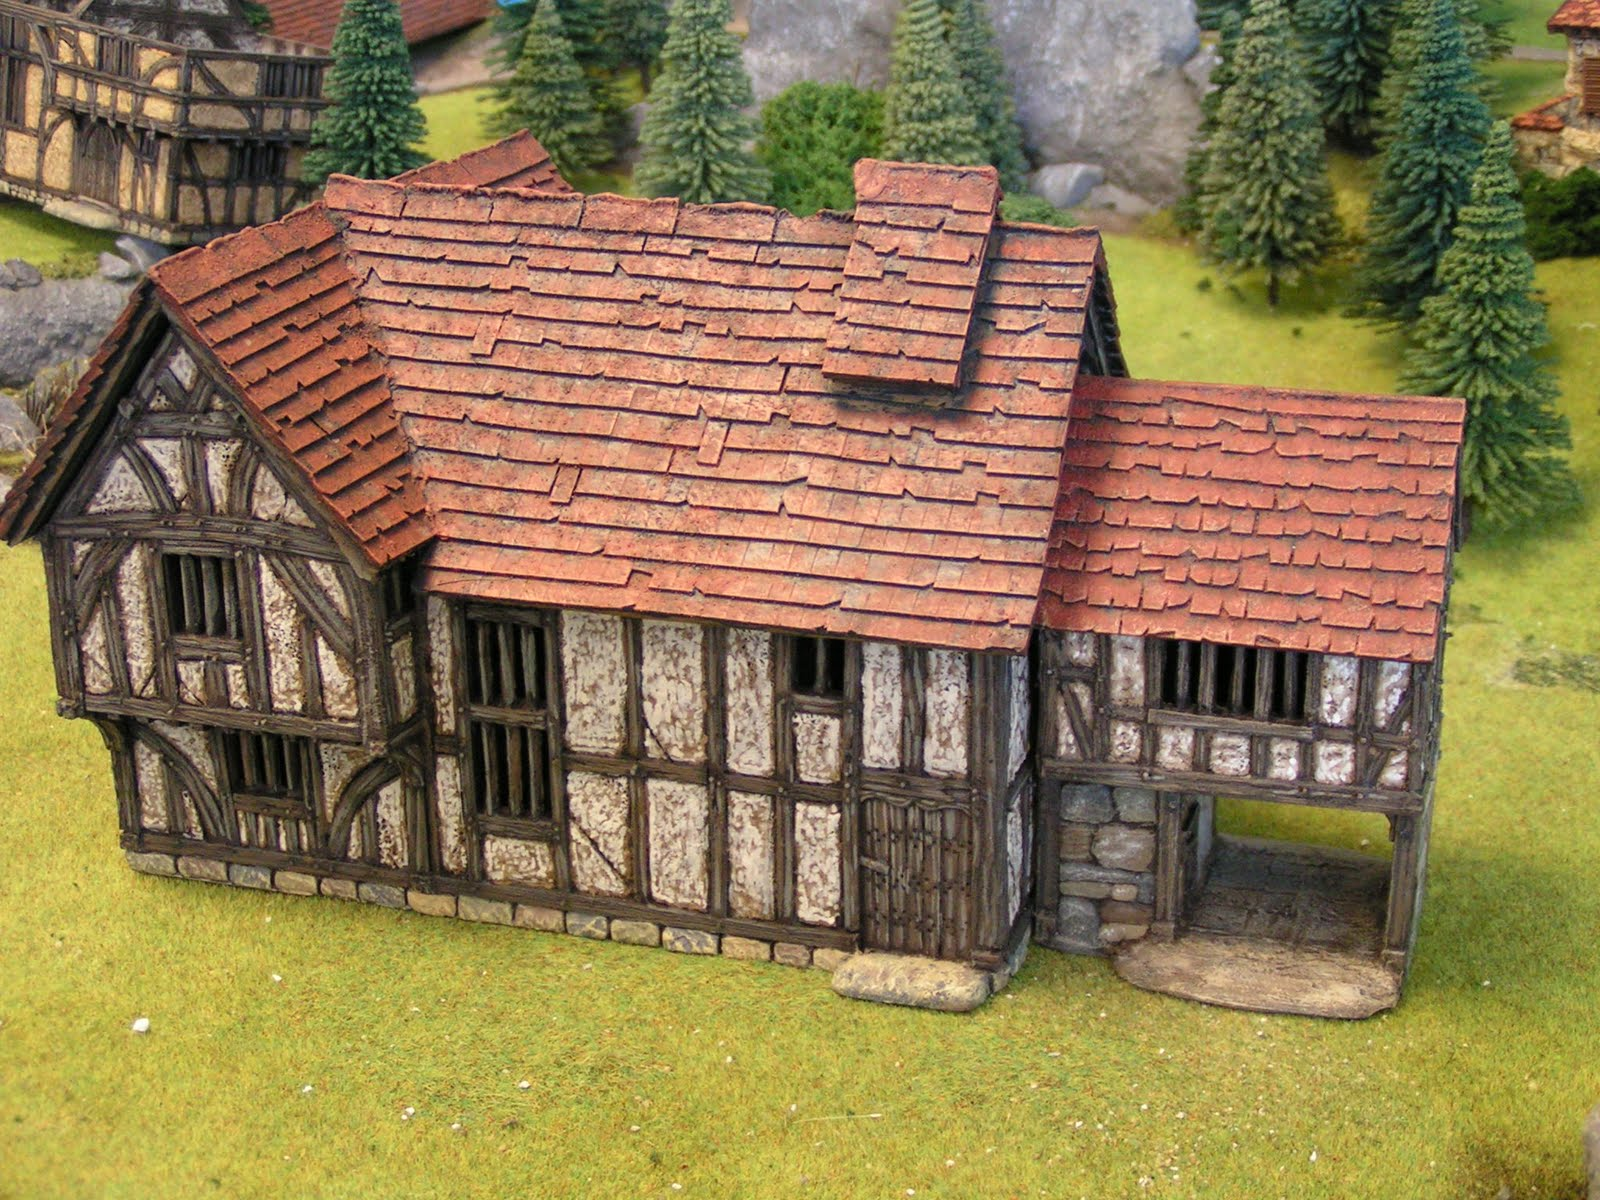 Dampf s modelling page 28mm medieval buildings from grand manner